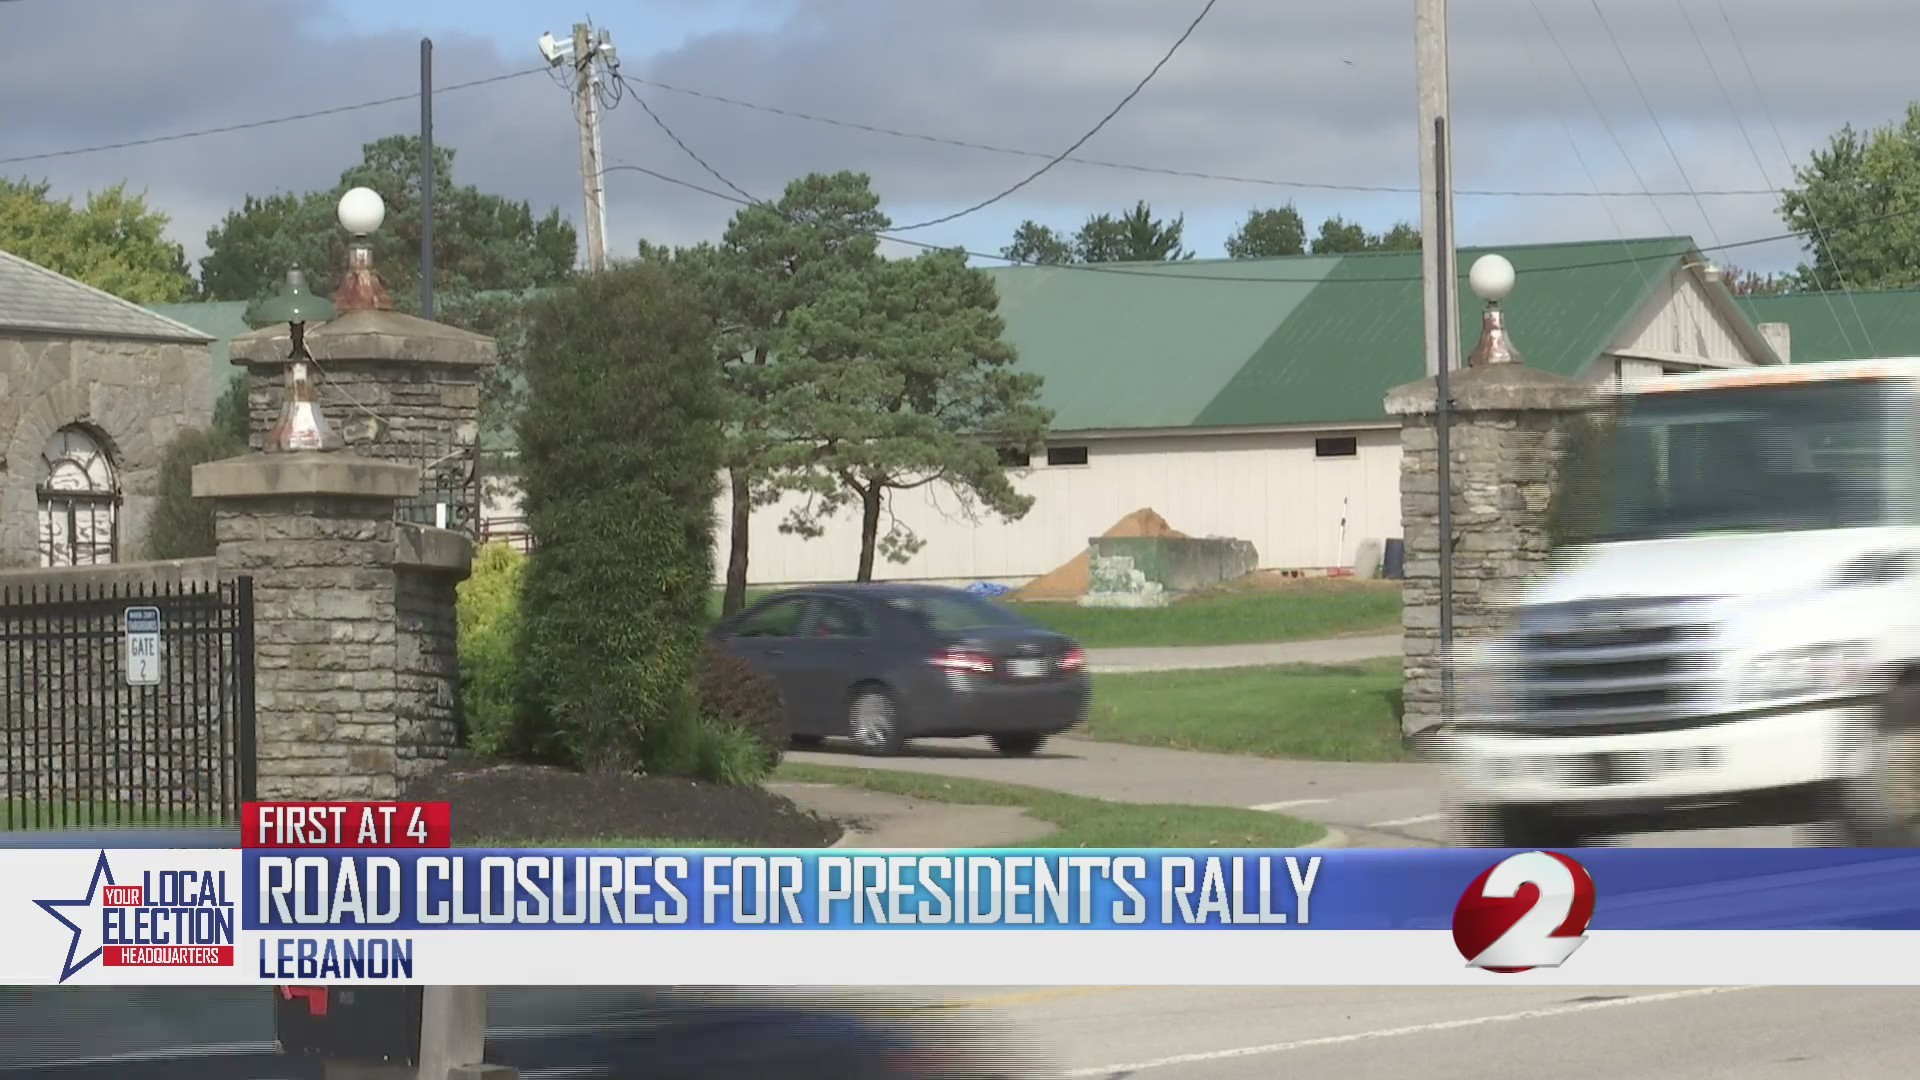 Road closures for President's rally